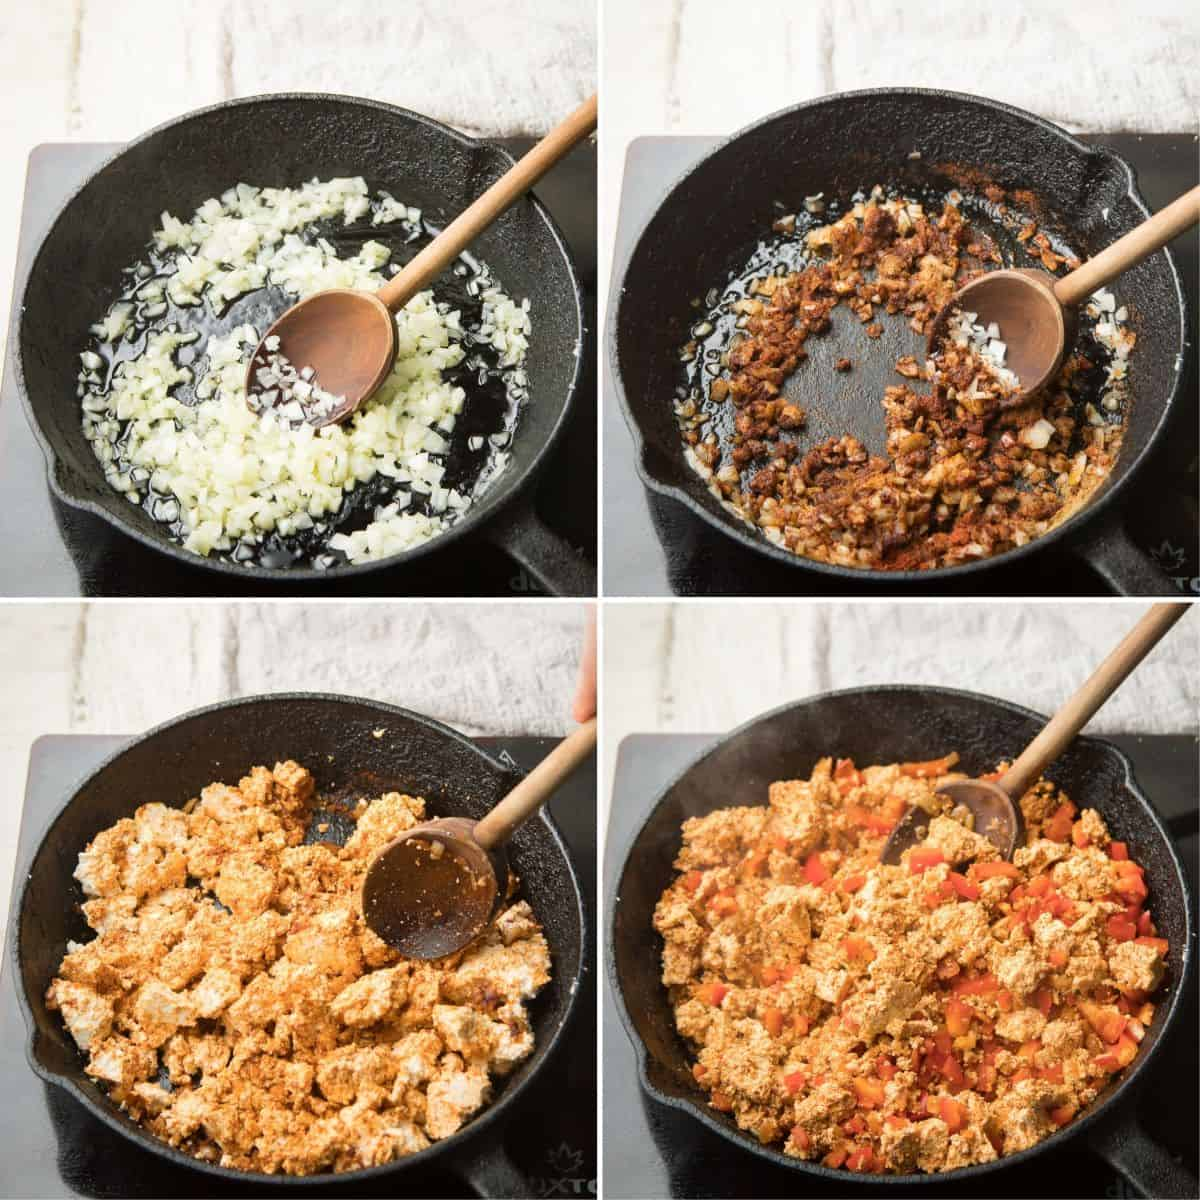 Collage Showing First Four Steps for Making Tofu Taco Filling: Sweat Onions, Add Spices, Add Tofu and Add Bell Pepper